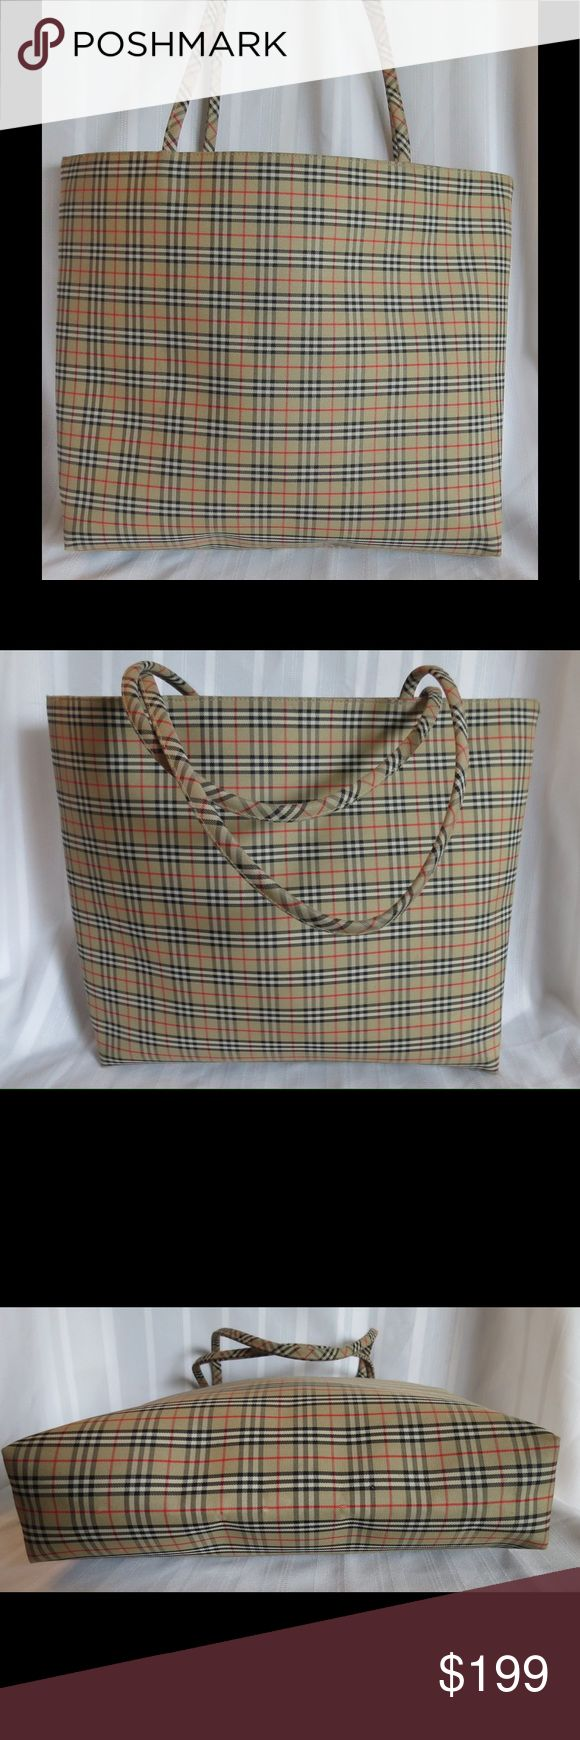 """HUGE Vintage AUTHENTIC Burberry Plaid Tote Bag HUGE Vintage AUTHENTIC Burberry Plaid Tote Bag Shopper     Approx  Measurements : 17"""" X 13"""" 3"""" deep  Strap 10"""" drop. Really beautiful condition especially for vintage, clean lining, outside is pretty immaculate, just light light signs of wear on the bottom, I have take photos, overall truly excellent. All of my items are Guaranteed 100% Genuine I do not sell FAKES of any kind   No Trades (S095014) Burberry Bags"""